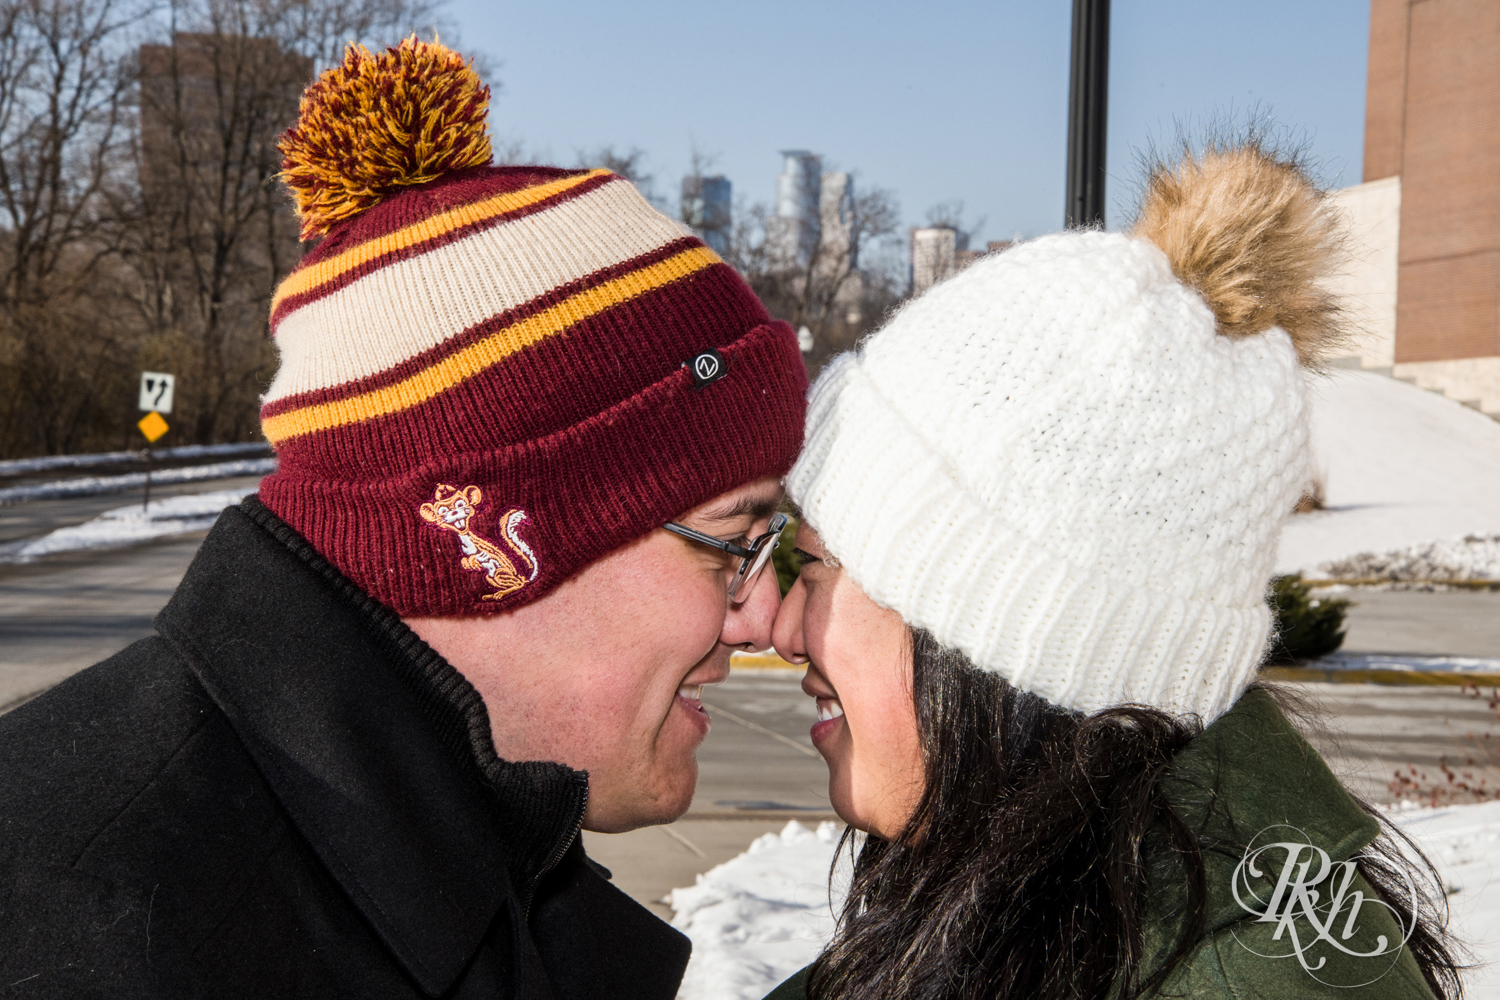 Jana & Paul - Minnesota Engagement Photography - University of Minnesota - RKH Images - Blog  (6 of 11).jpg